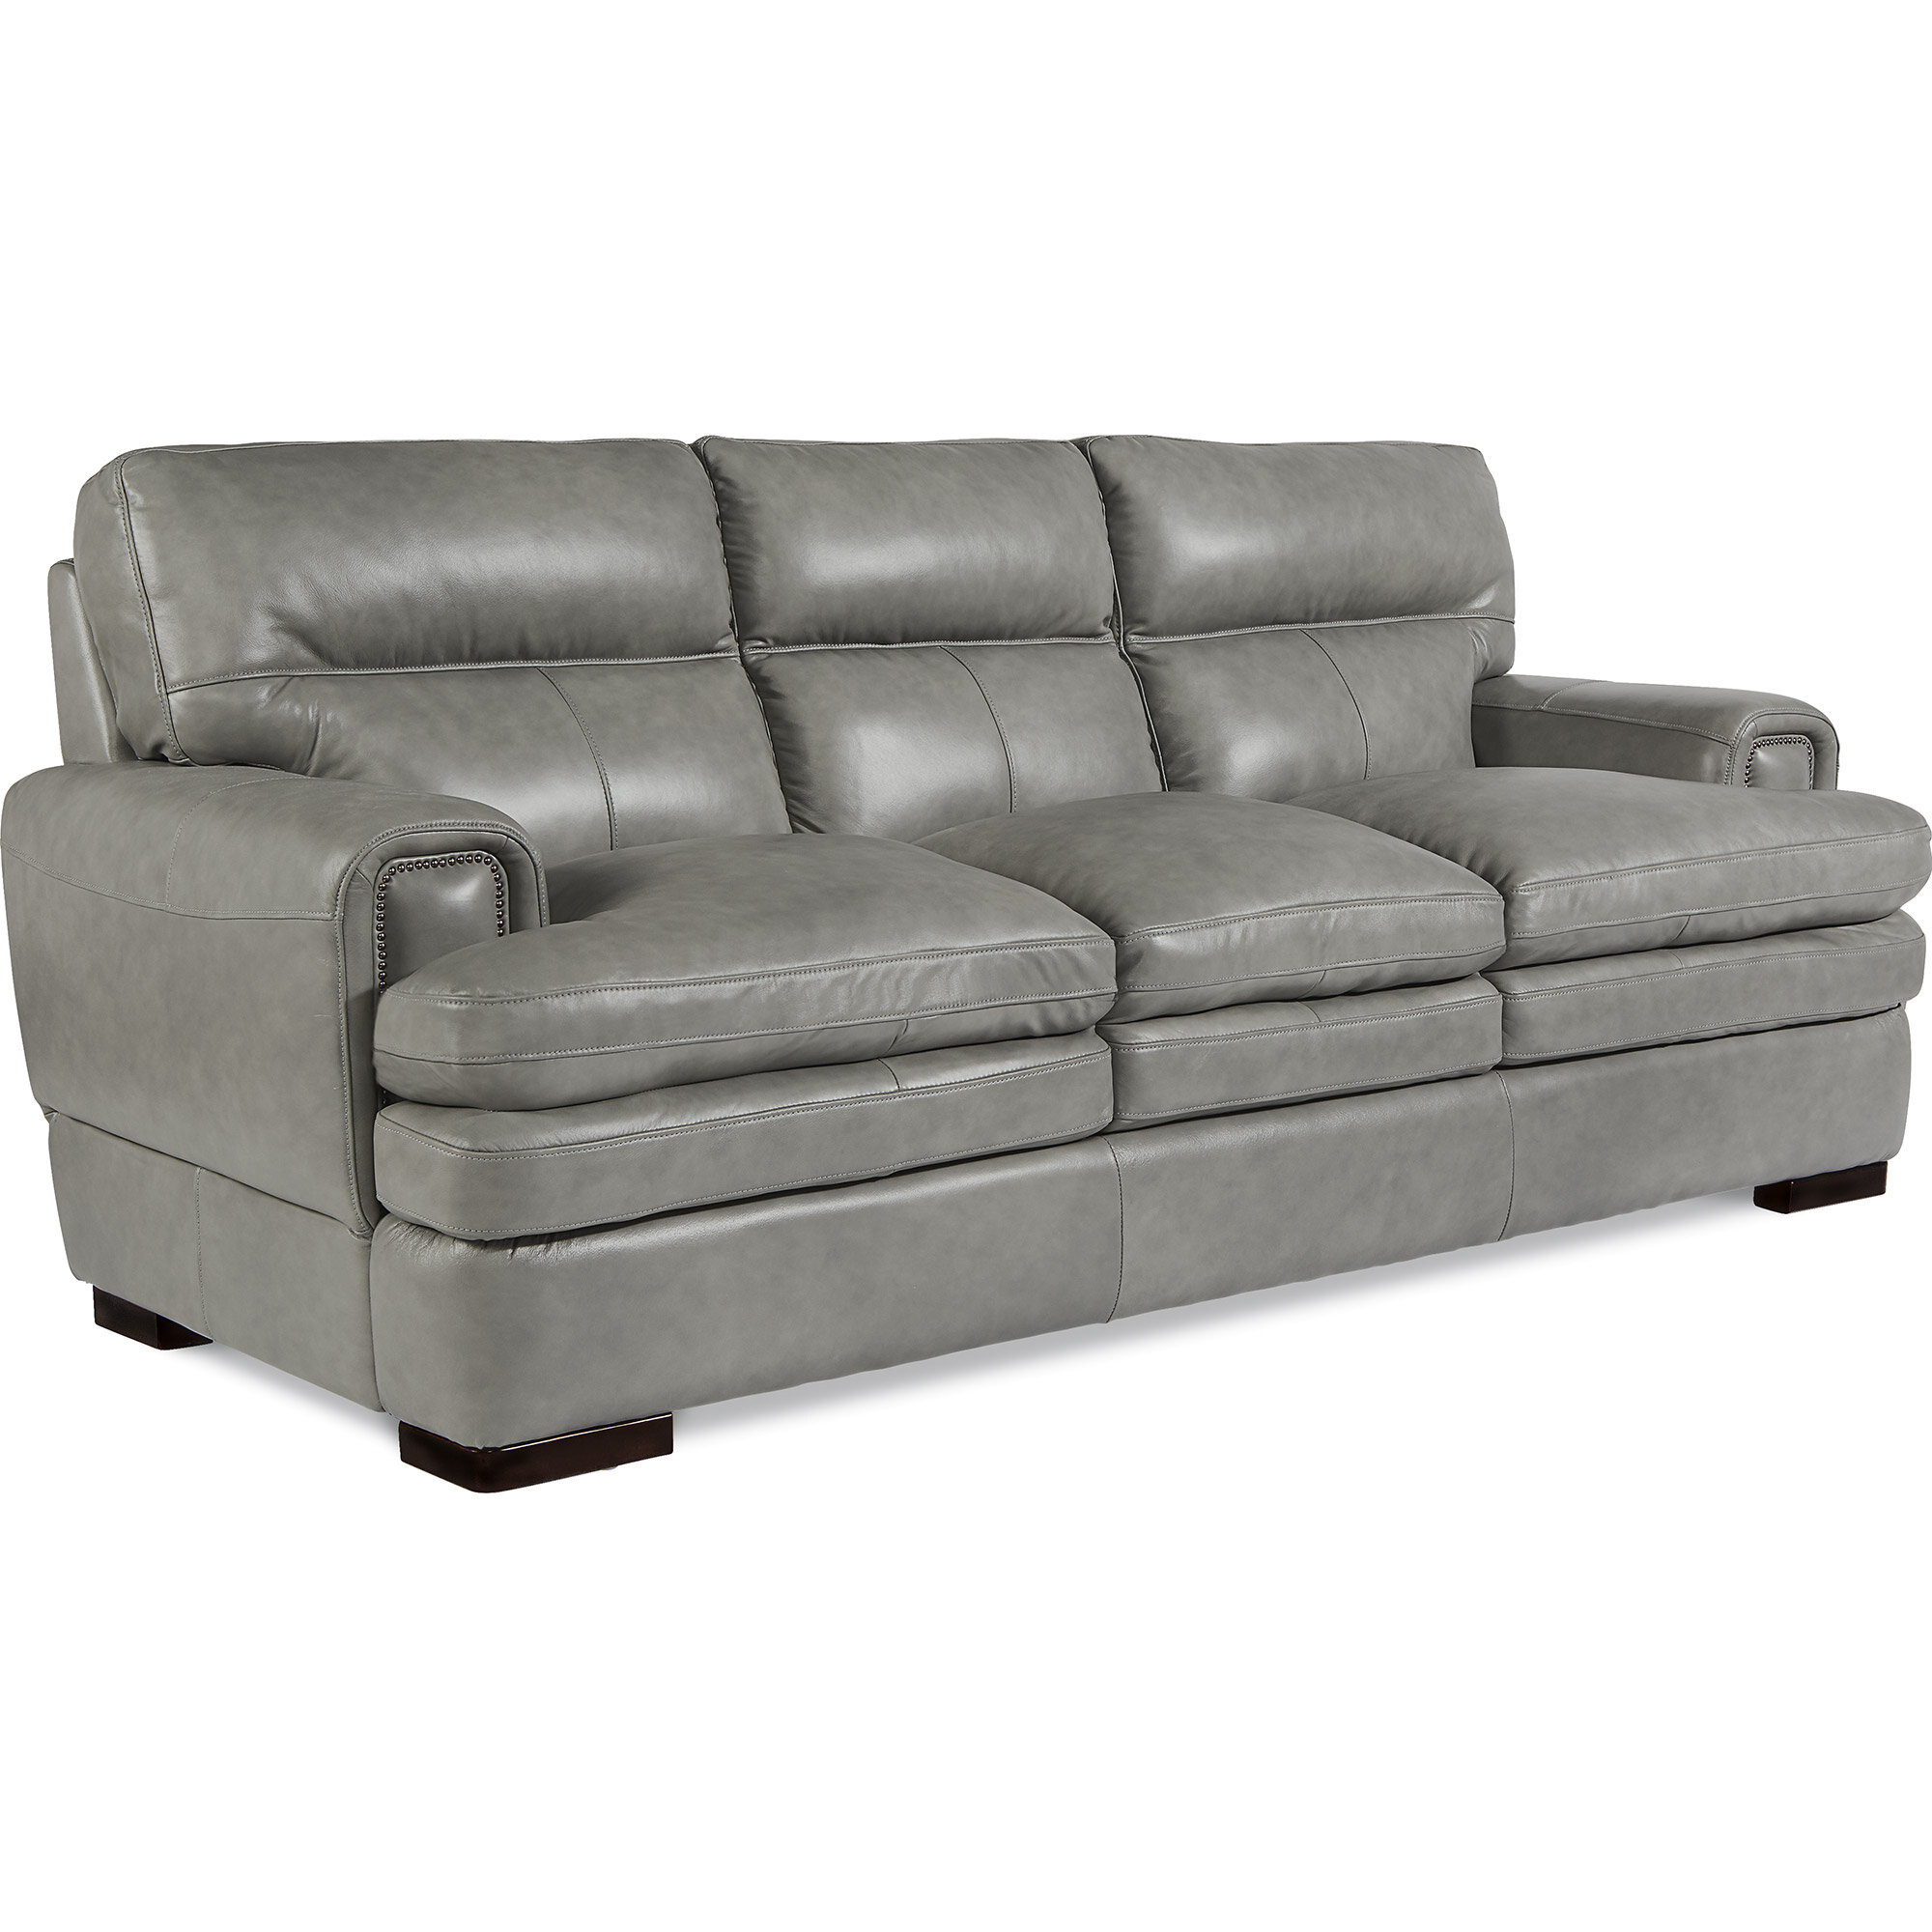 La-Z-Boy Jake Leather Sofa & Reviews | Wayfair